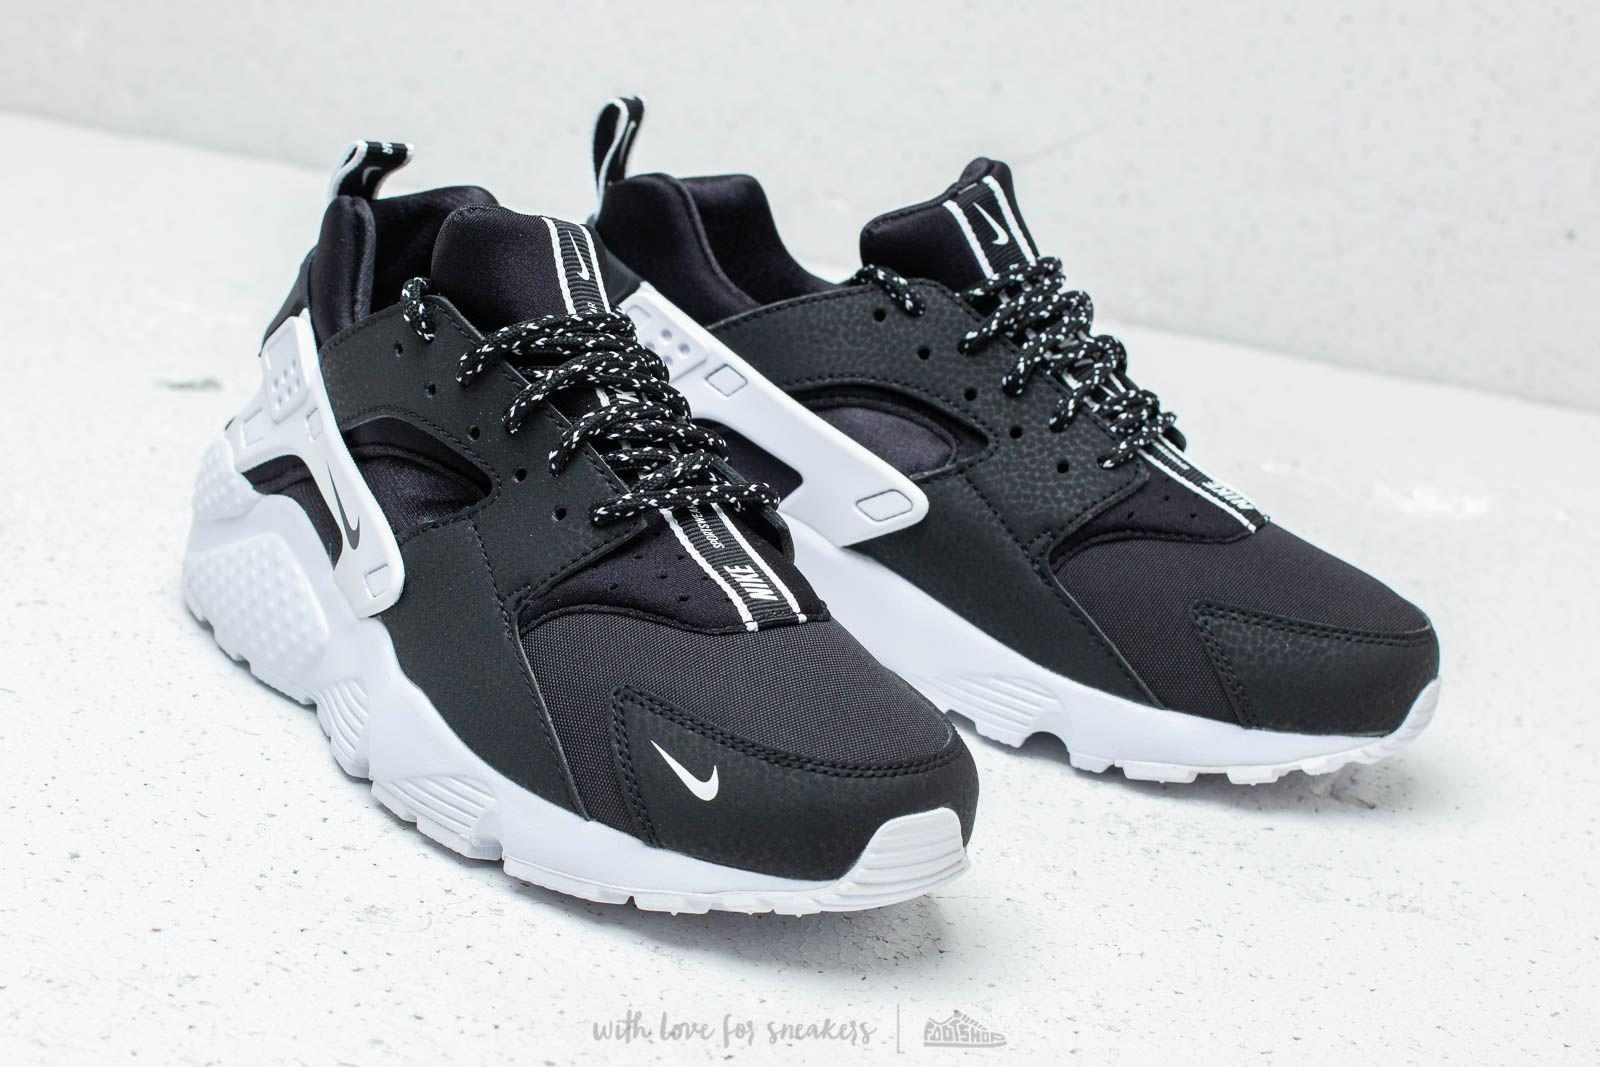 d1395e3d2137 Lyst - Nike Huarache Run Se (gs) Black  Black-white in Black